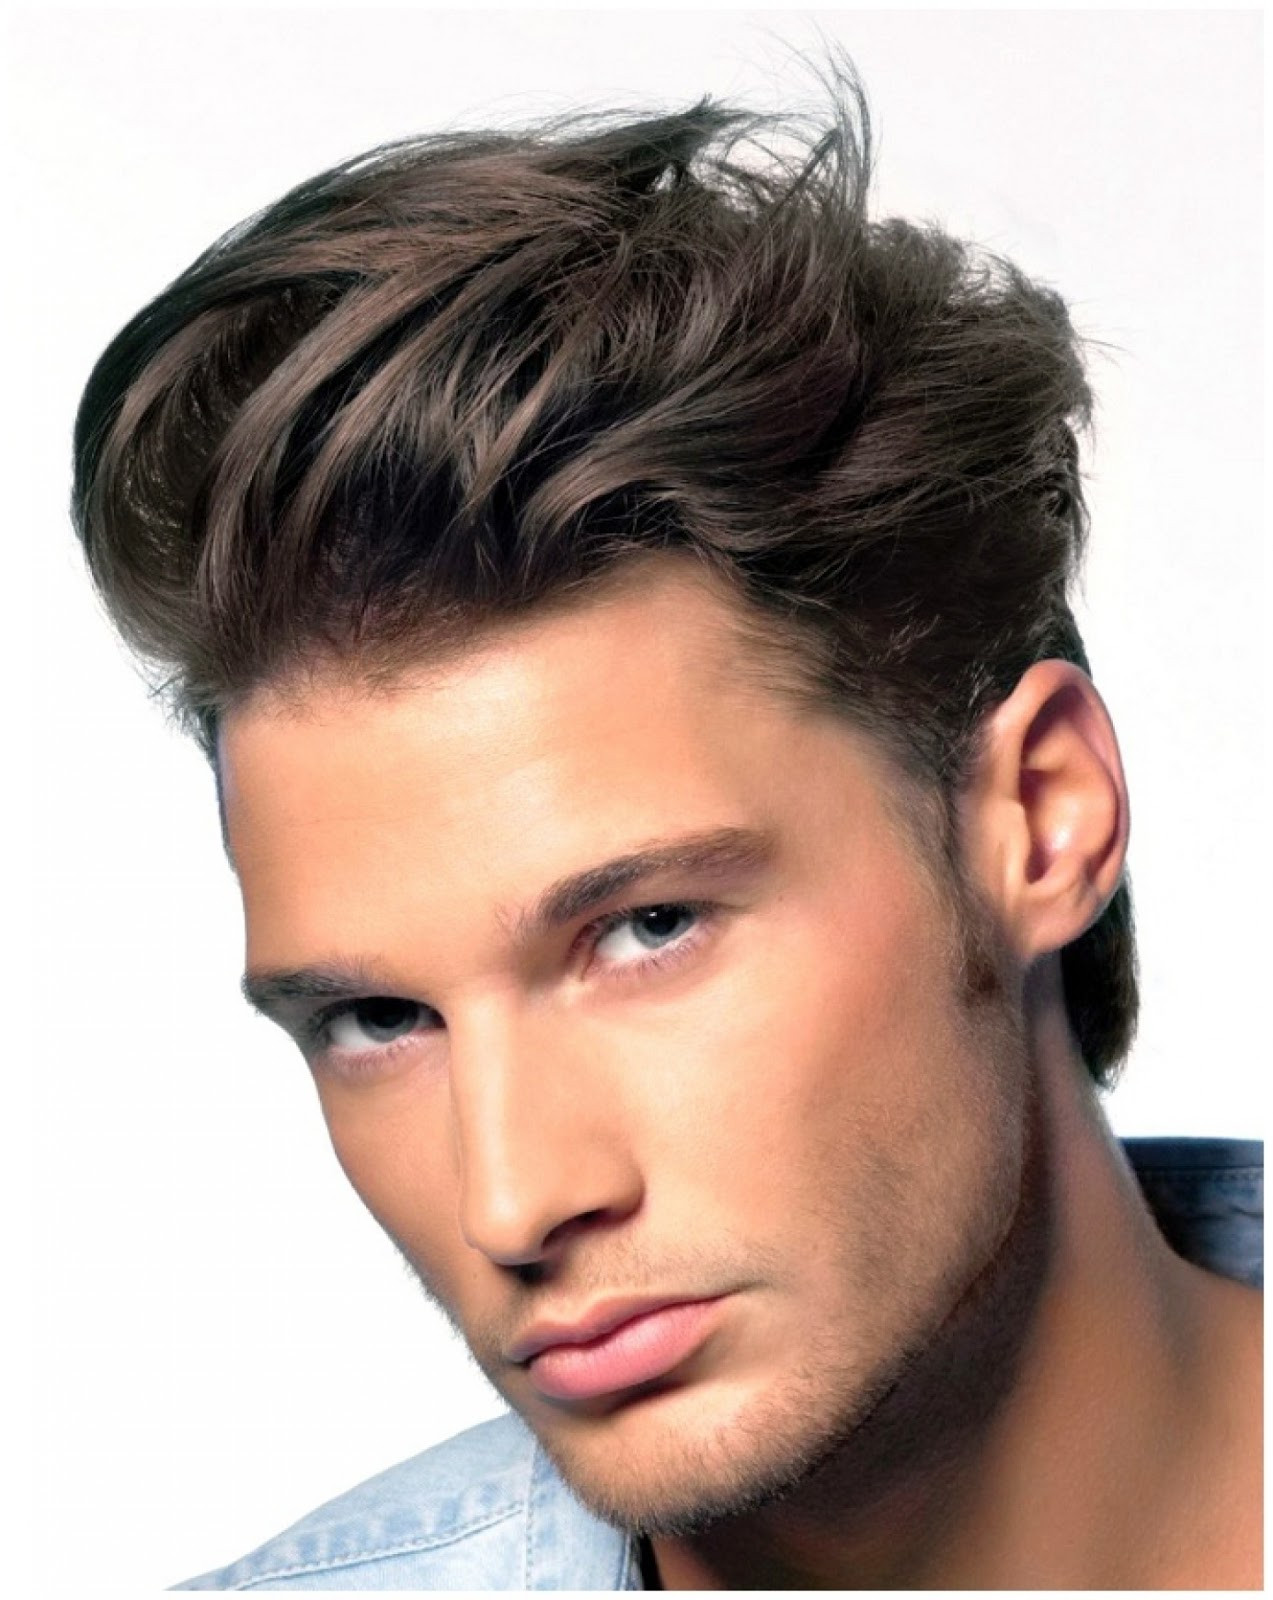 Best Undercut Hairstyles  The Undercut e The Best Hairstyle For Men